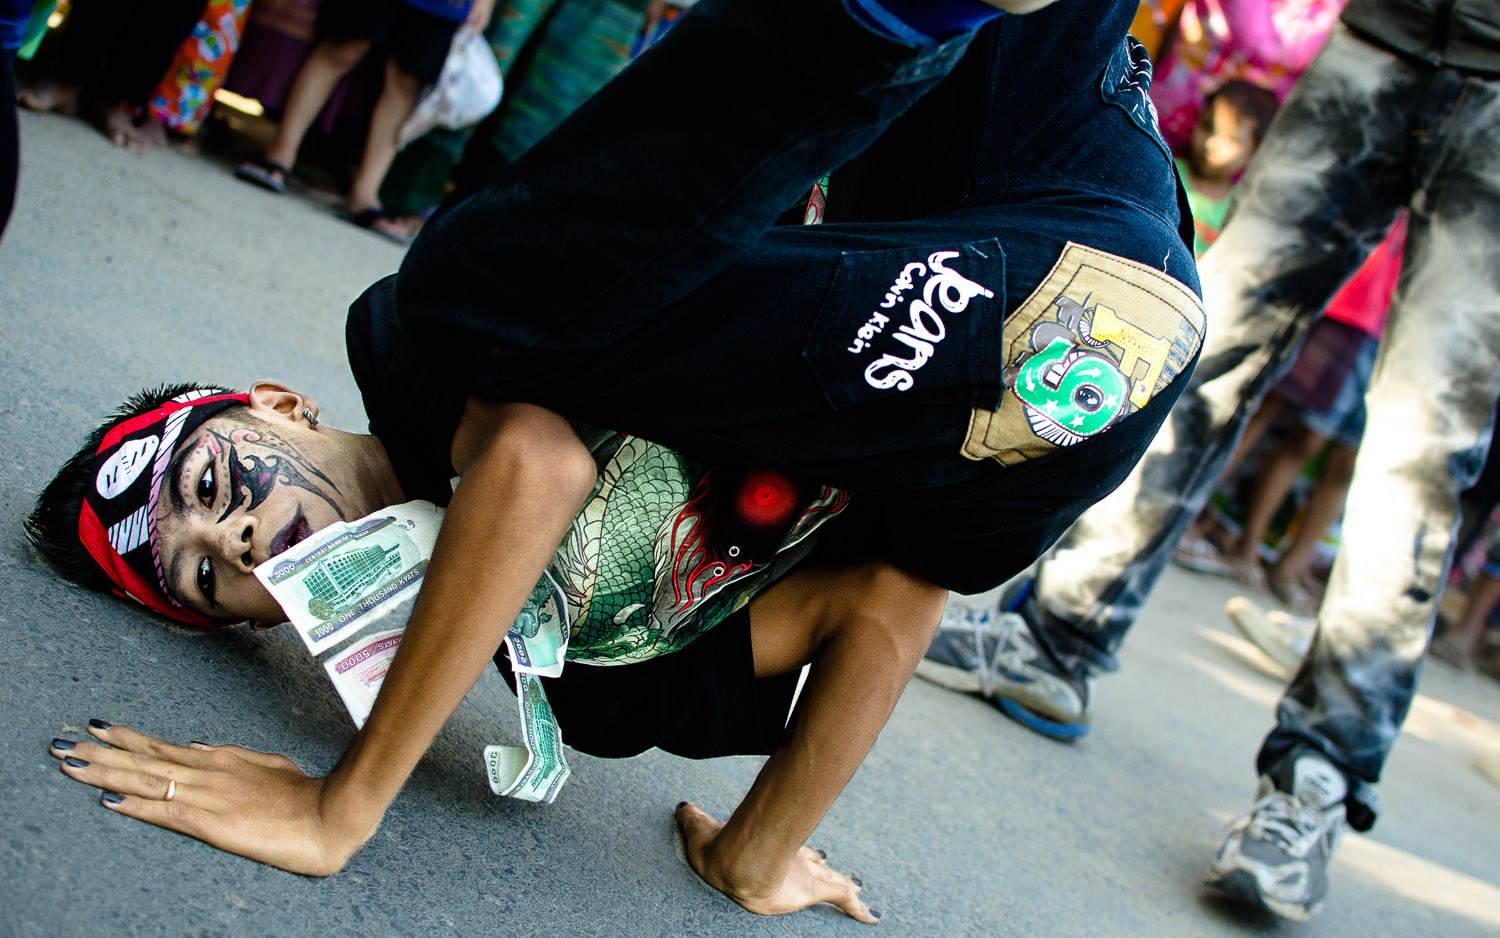 Break-dancing on the streets, with money pinned to the shirt to be given as an offering at the pagoda.  © Dustin Main 2014